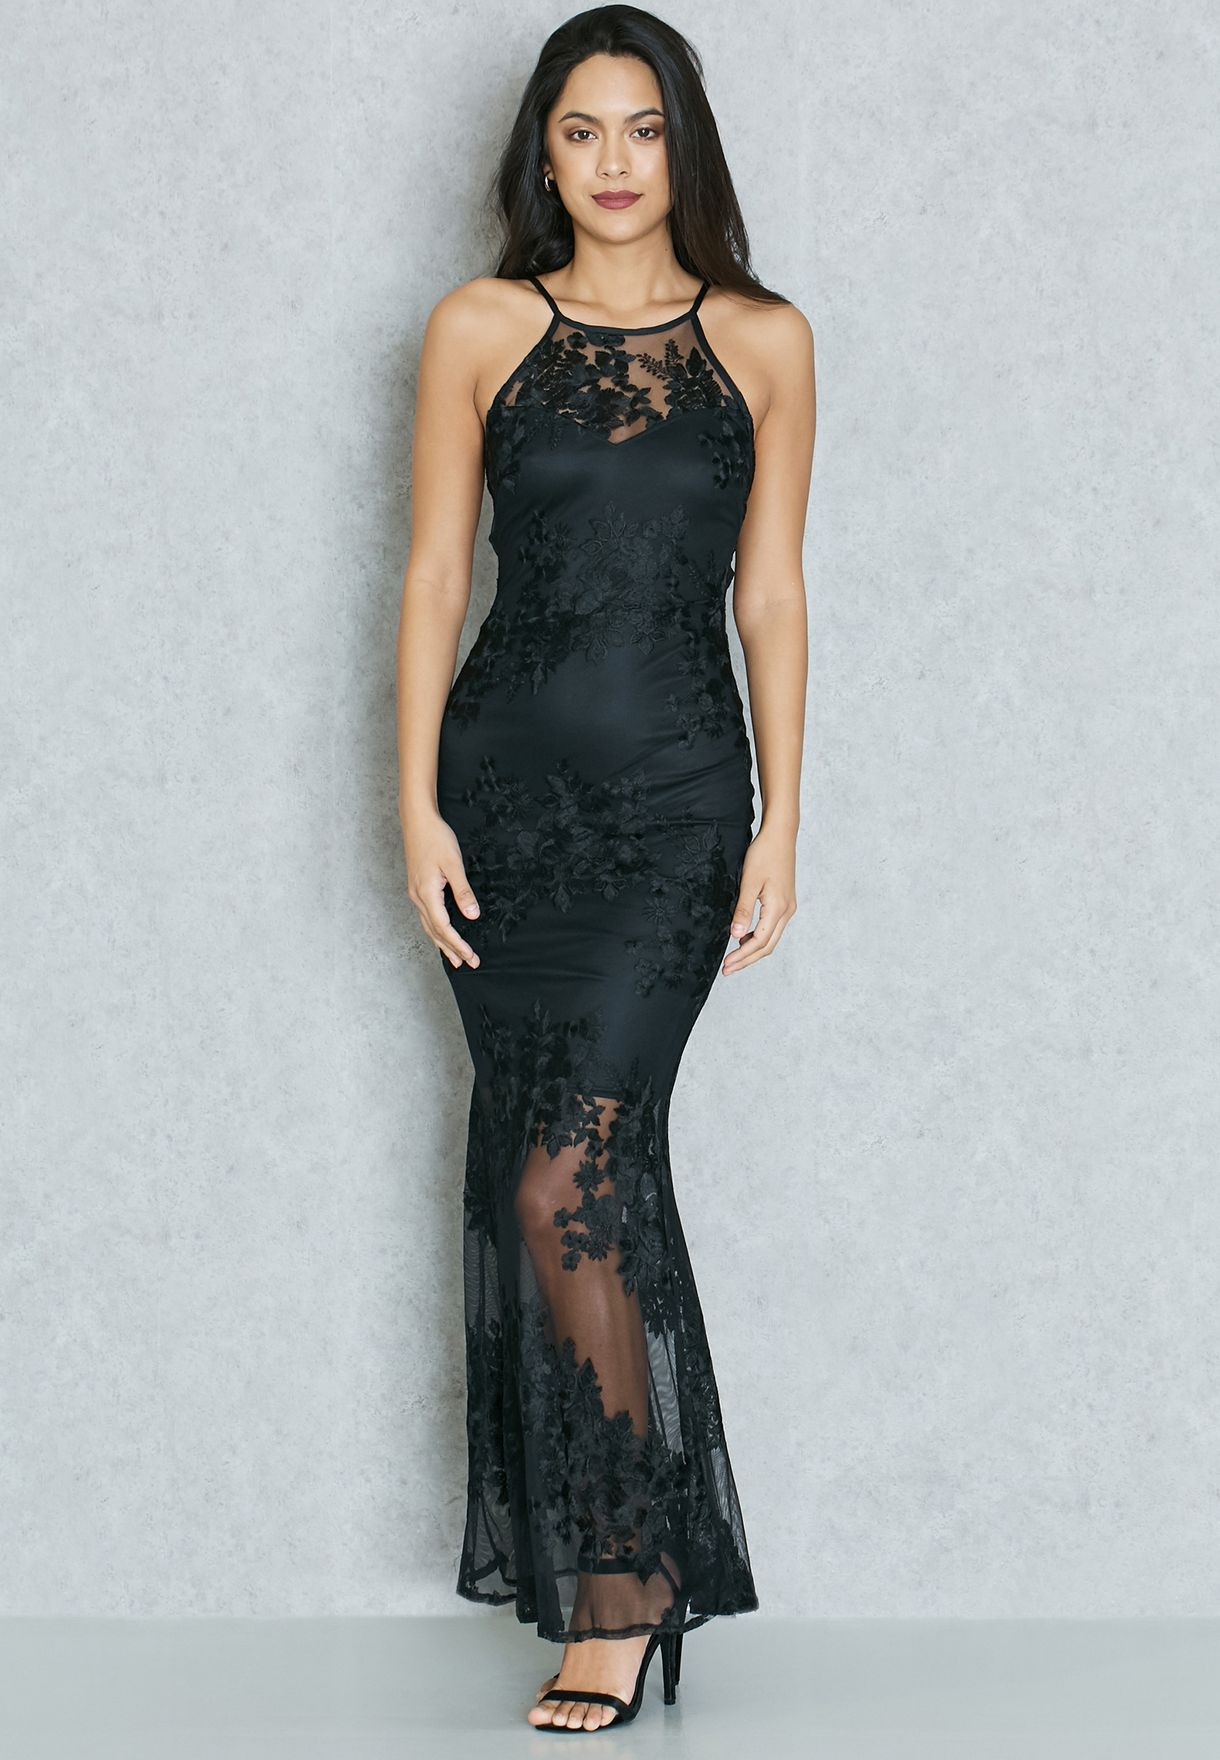 d4bd2949c5 Shop Lipsy black Embroidered Lace Sheer Hem Maxi Dress JD04219 for ...